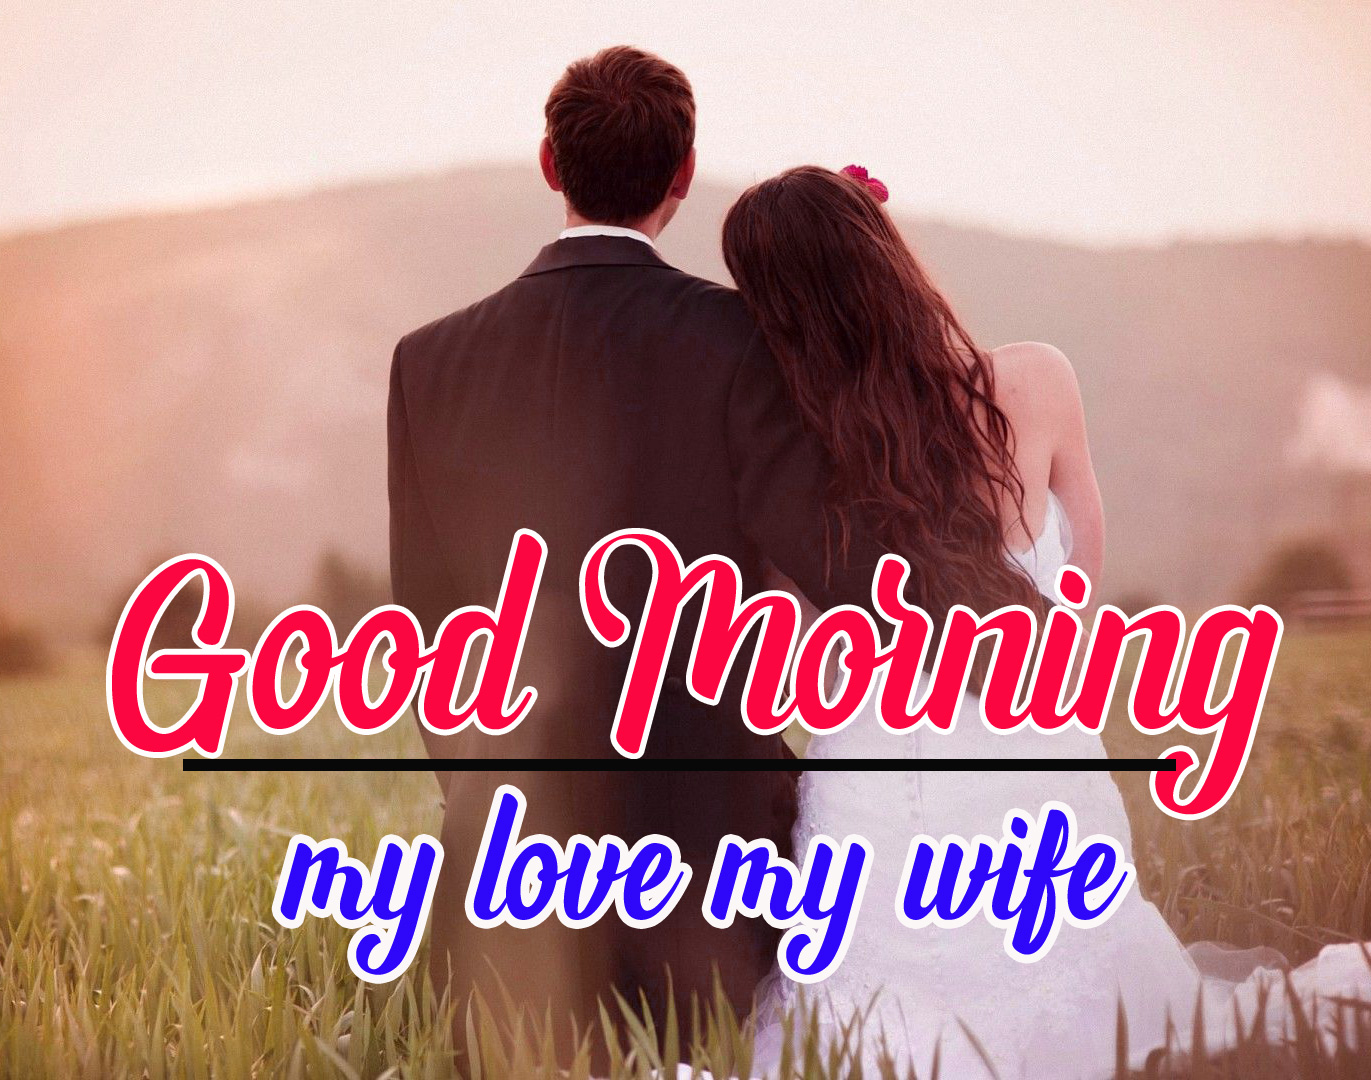 Beautiful Good Morning Images Photo Pics Download In HD For Sweet Love Couple